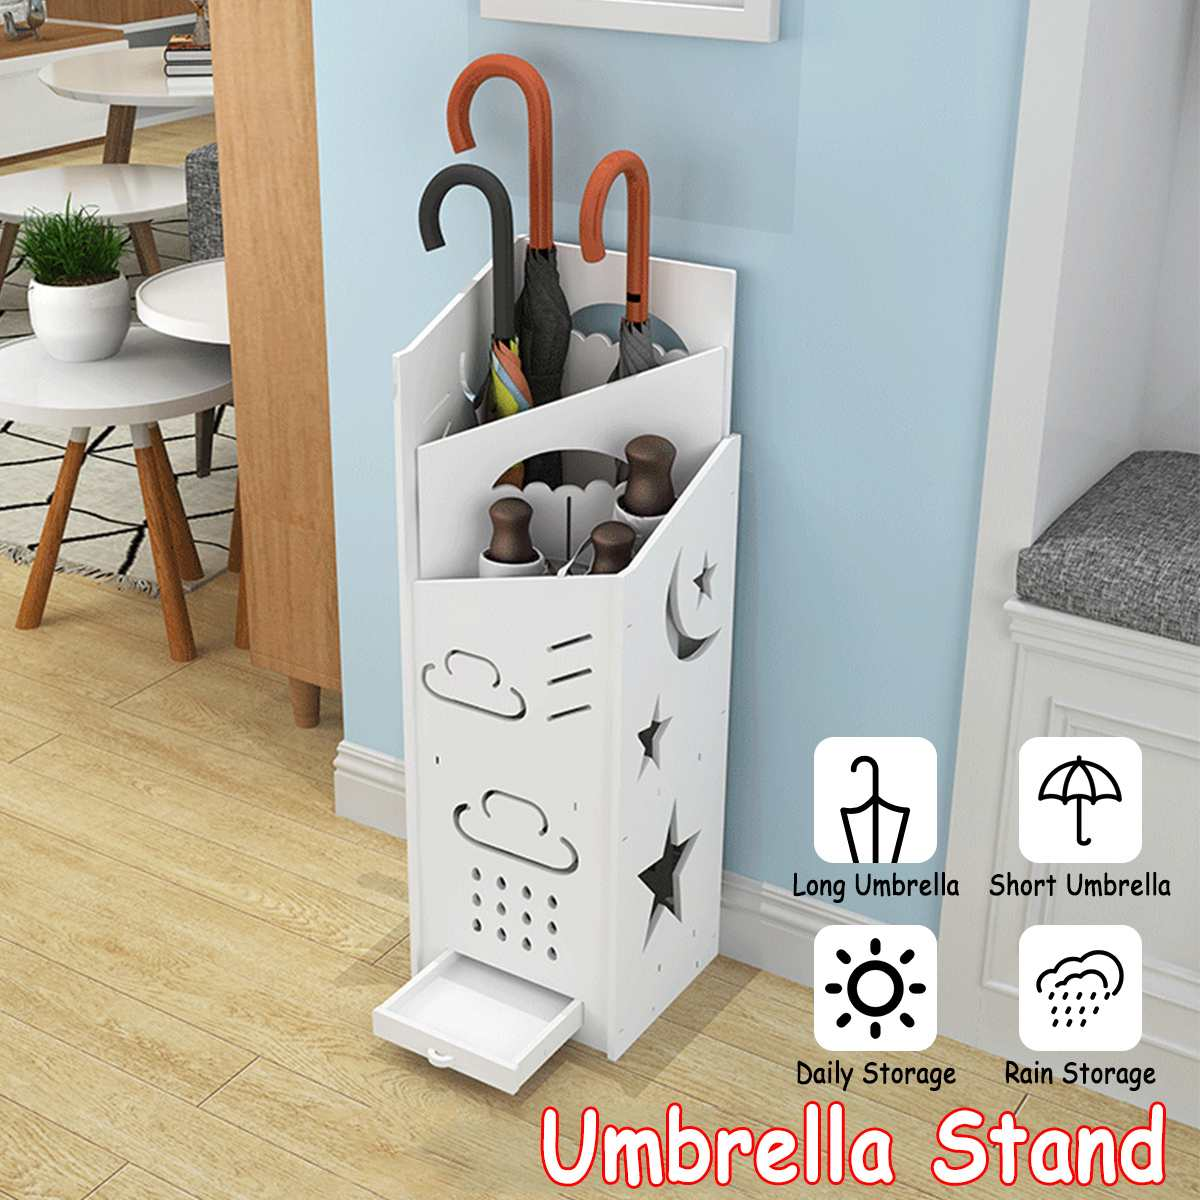 75x22cm Fall To The Ground-creative Umbrella Barrel Family Expenses Umbrella Stand Storage Hook Home Office